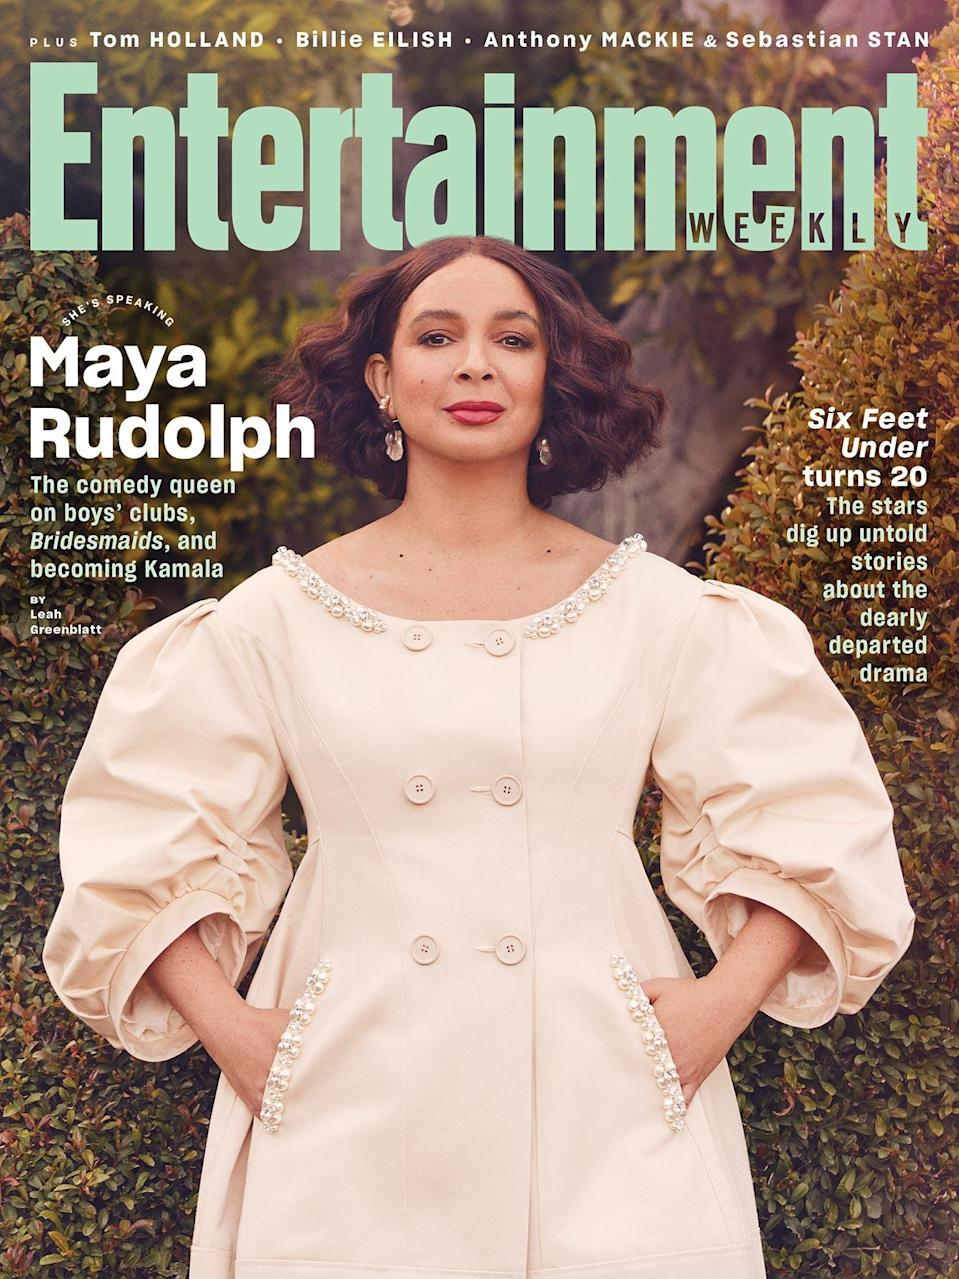 """<p><strong><em>For more on Maya Rudolph, <a href=""""https://www.magazine.store/entertainment-weekly/2021/maya-rudolph/"""" rel=""""nofollow noopener"""" target=""""_blank"""" data-ylk=""""slk:order the March issue"""" class=""""link rapid-noclick-resp"""">order the March issue</a> of </em>Entertainment Weekly<em> or find it on newsstands beginning Feb. 19. Don't forget to <a href=""""https://www.magazine.store/entertainment-weekly/?utm_source=ew.com&utm_medium=internal&utm_campaign=i902ewtbw1412"""" rel=""""nofollow noopener"""" target=""""_blank"""" data-ylk=""""slk:subscribe"""" class=""""link rapid-noclick-resp"""">subscribe</a> for more exclusive interviews and photos, only in EW.</em></strong></p>"""